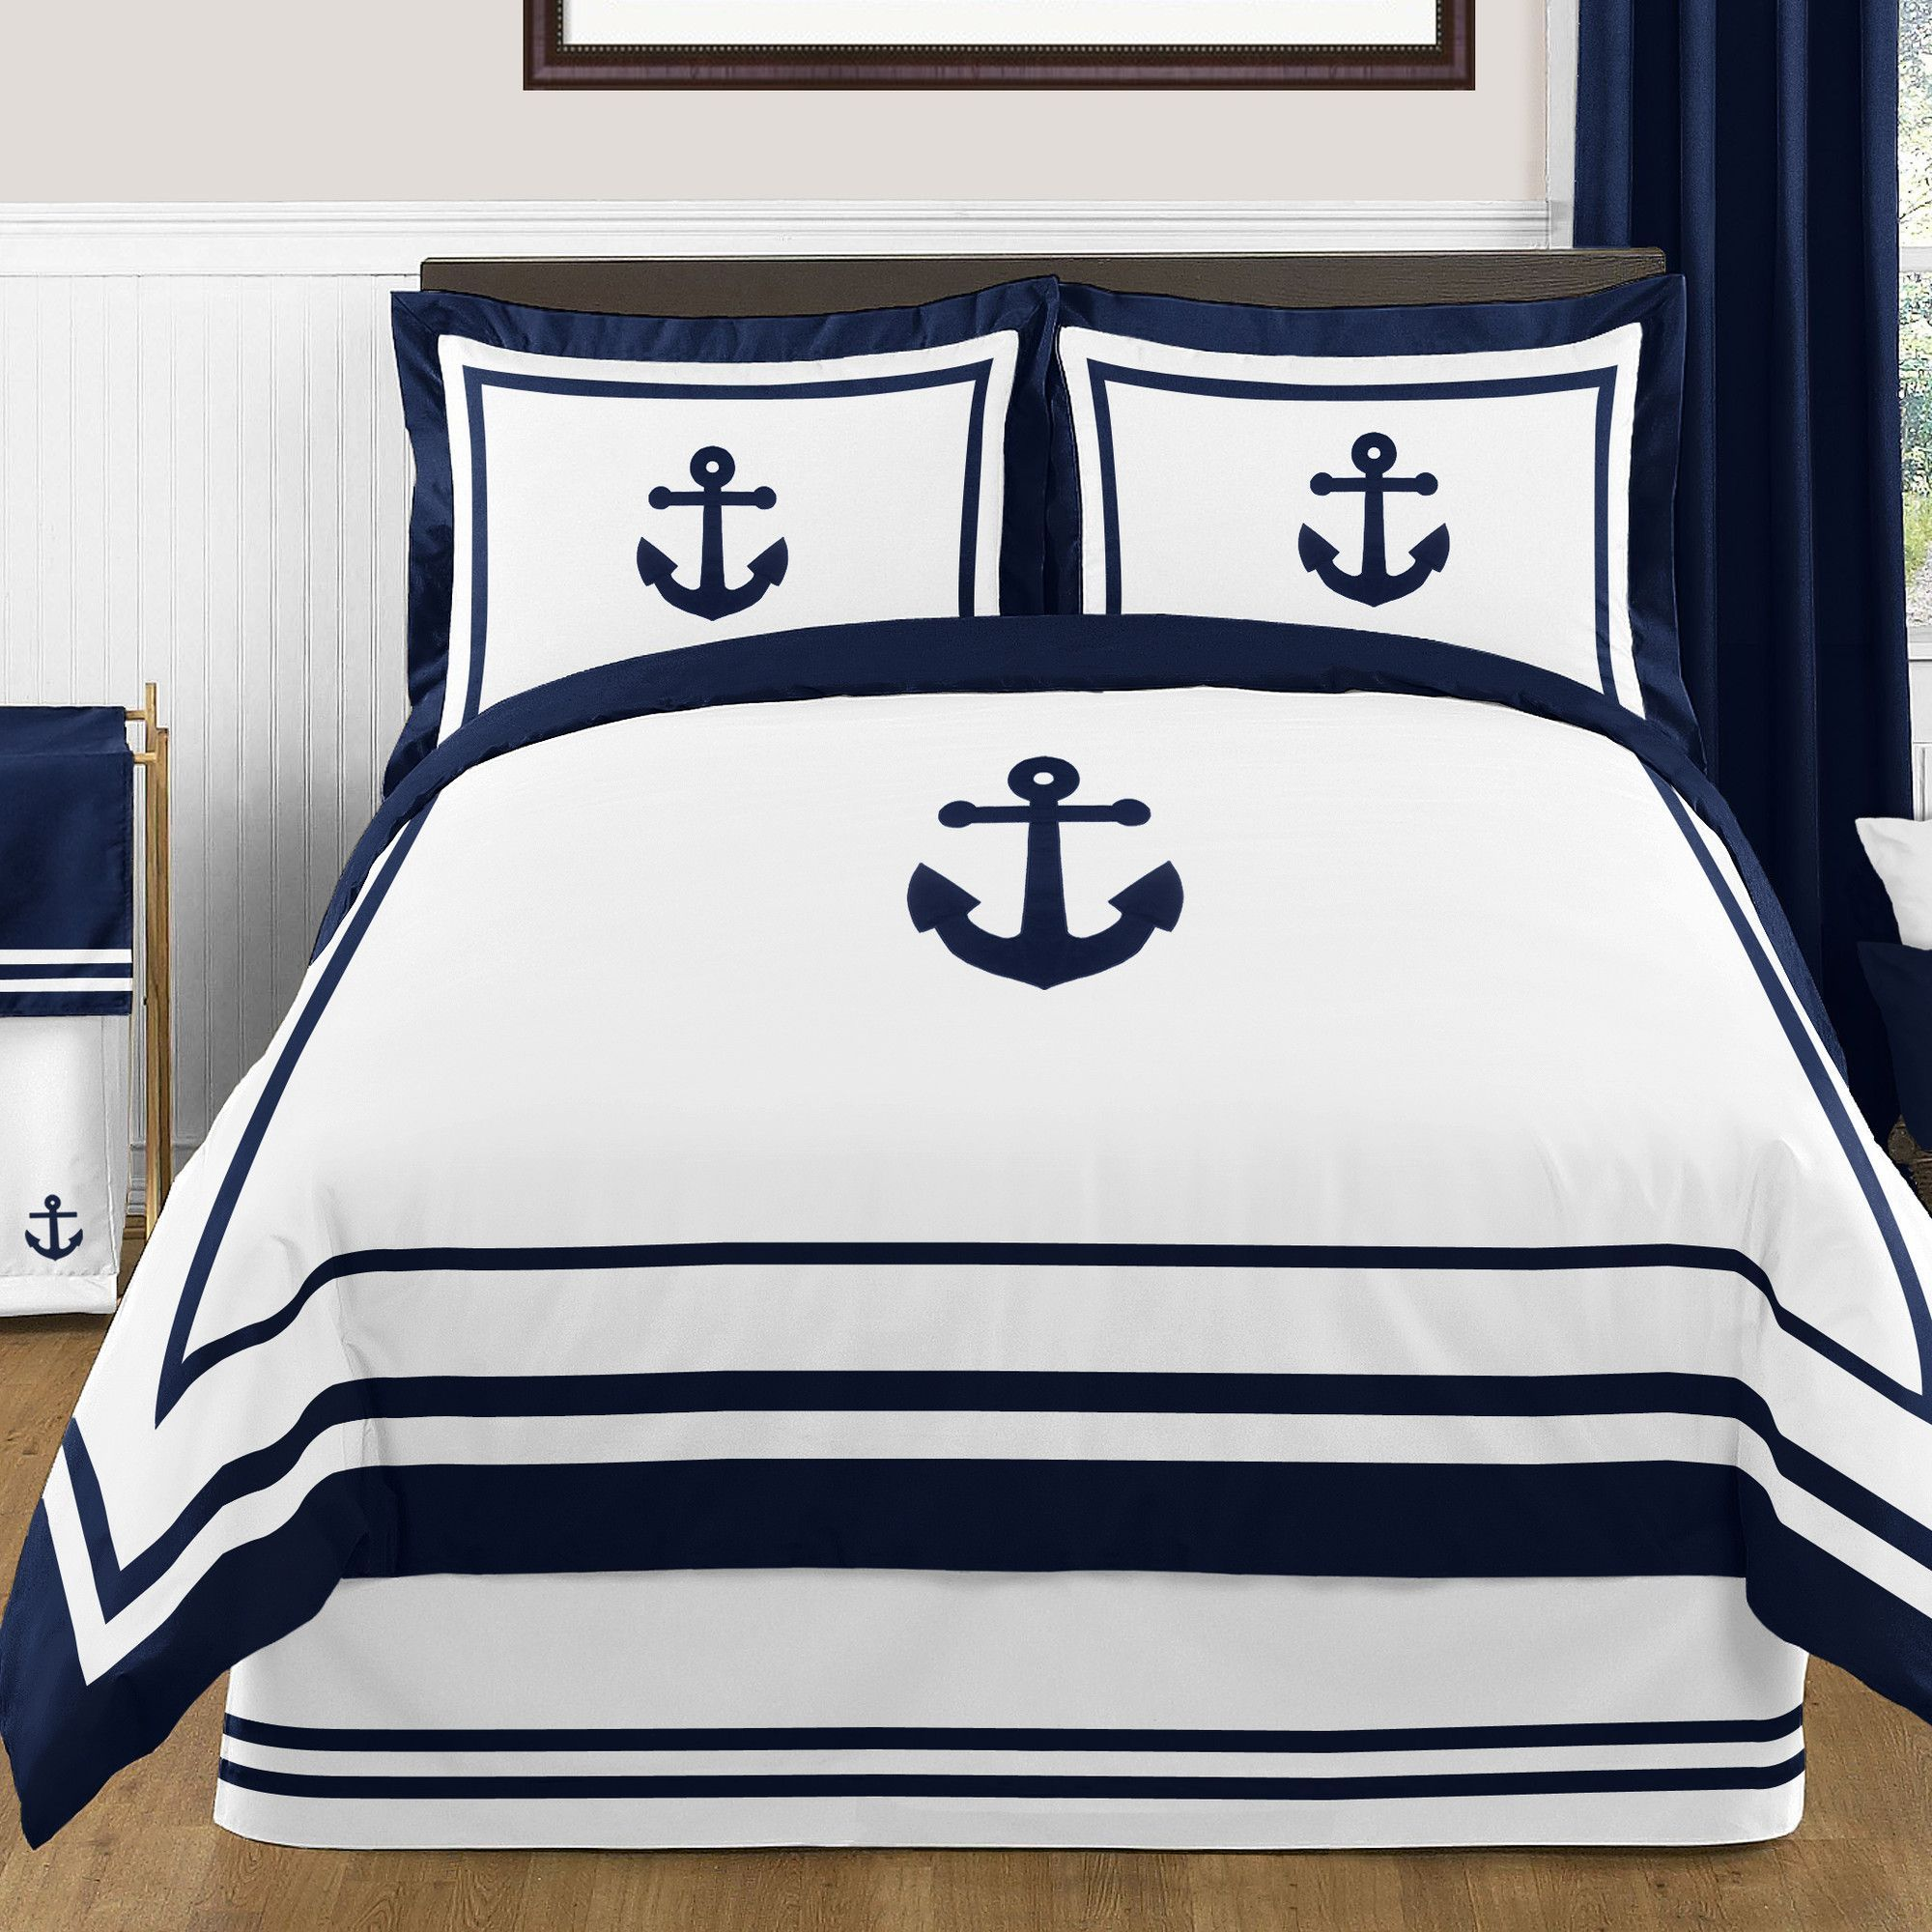 queen king girl comfort nautical daybed inspirations sets cheap silver comforterding bedding comforter full shocking california covers gray size bedspreads queencomforter photos teen touch quilts bellamy of